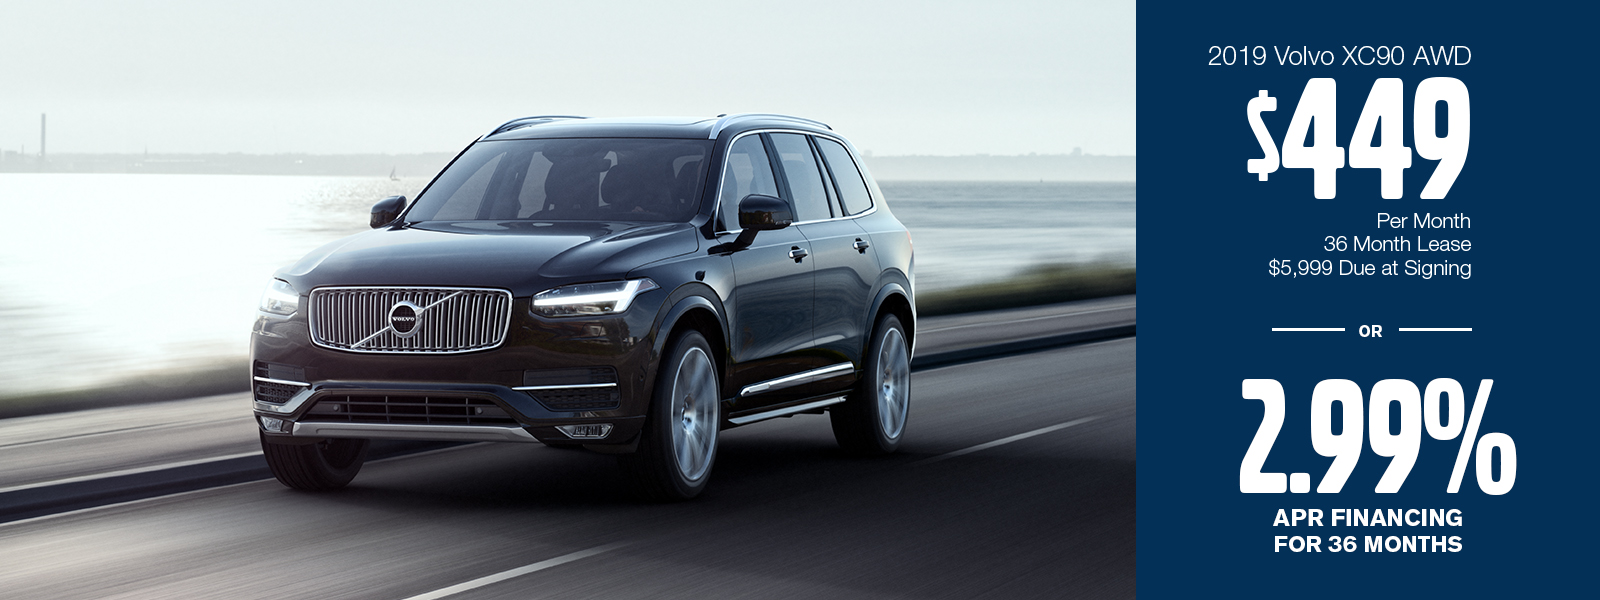 2019 Volvo XC90 T5 Momentum AWD Low Payment Lease or Finance Special in Gilbert, AZ